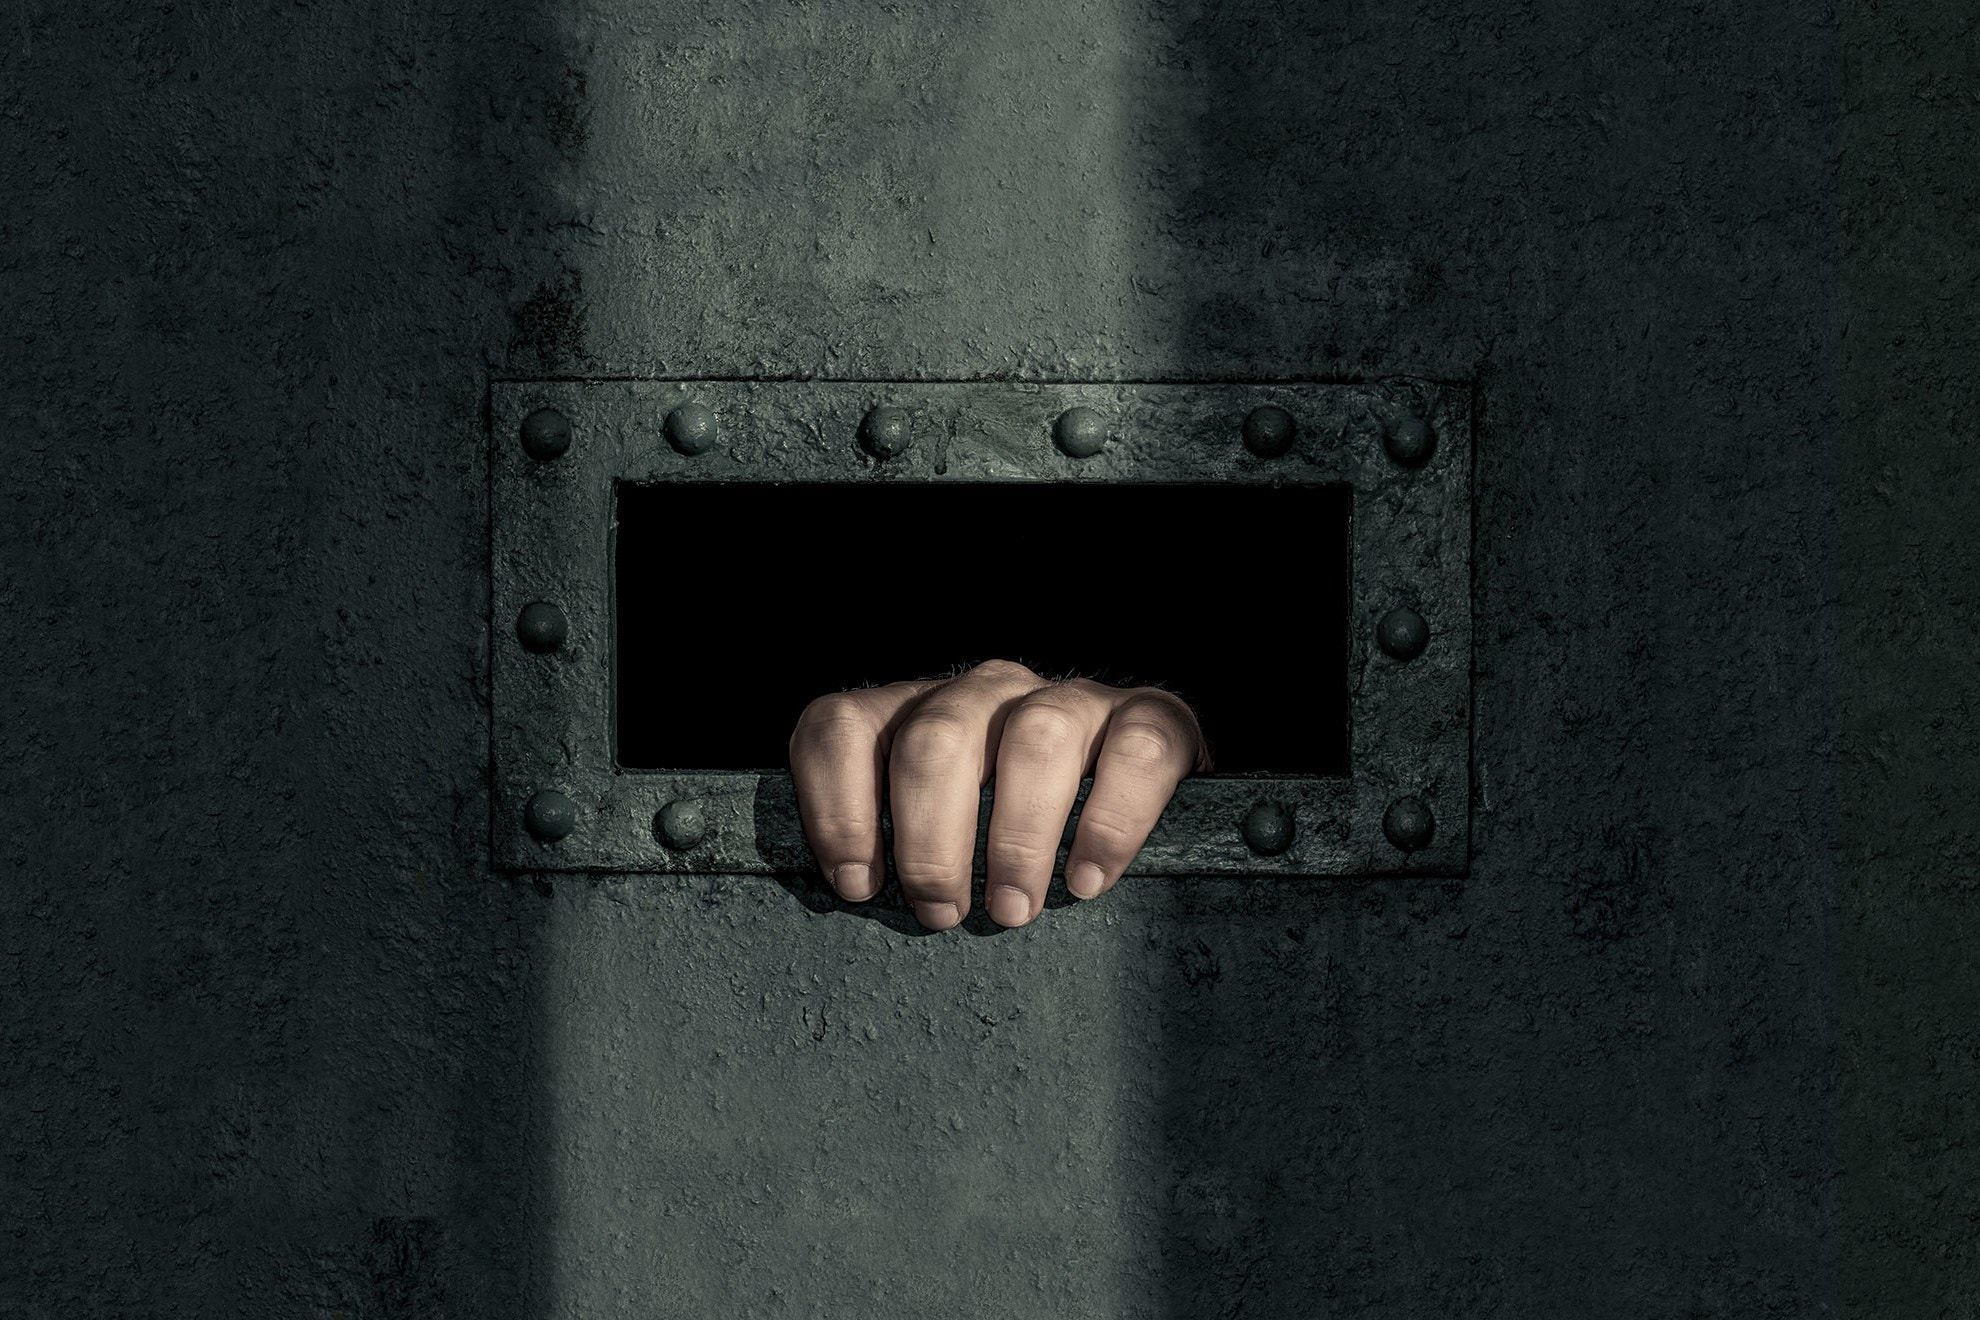 Suicide of Texas Prisoner Highlights the Psychological Effects of Solitary Confinement 1